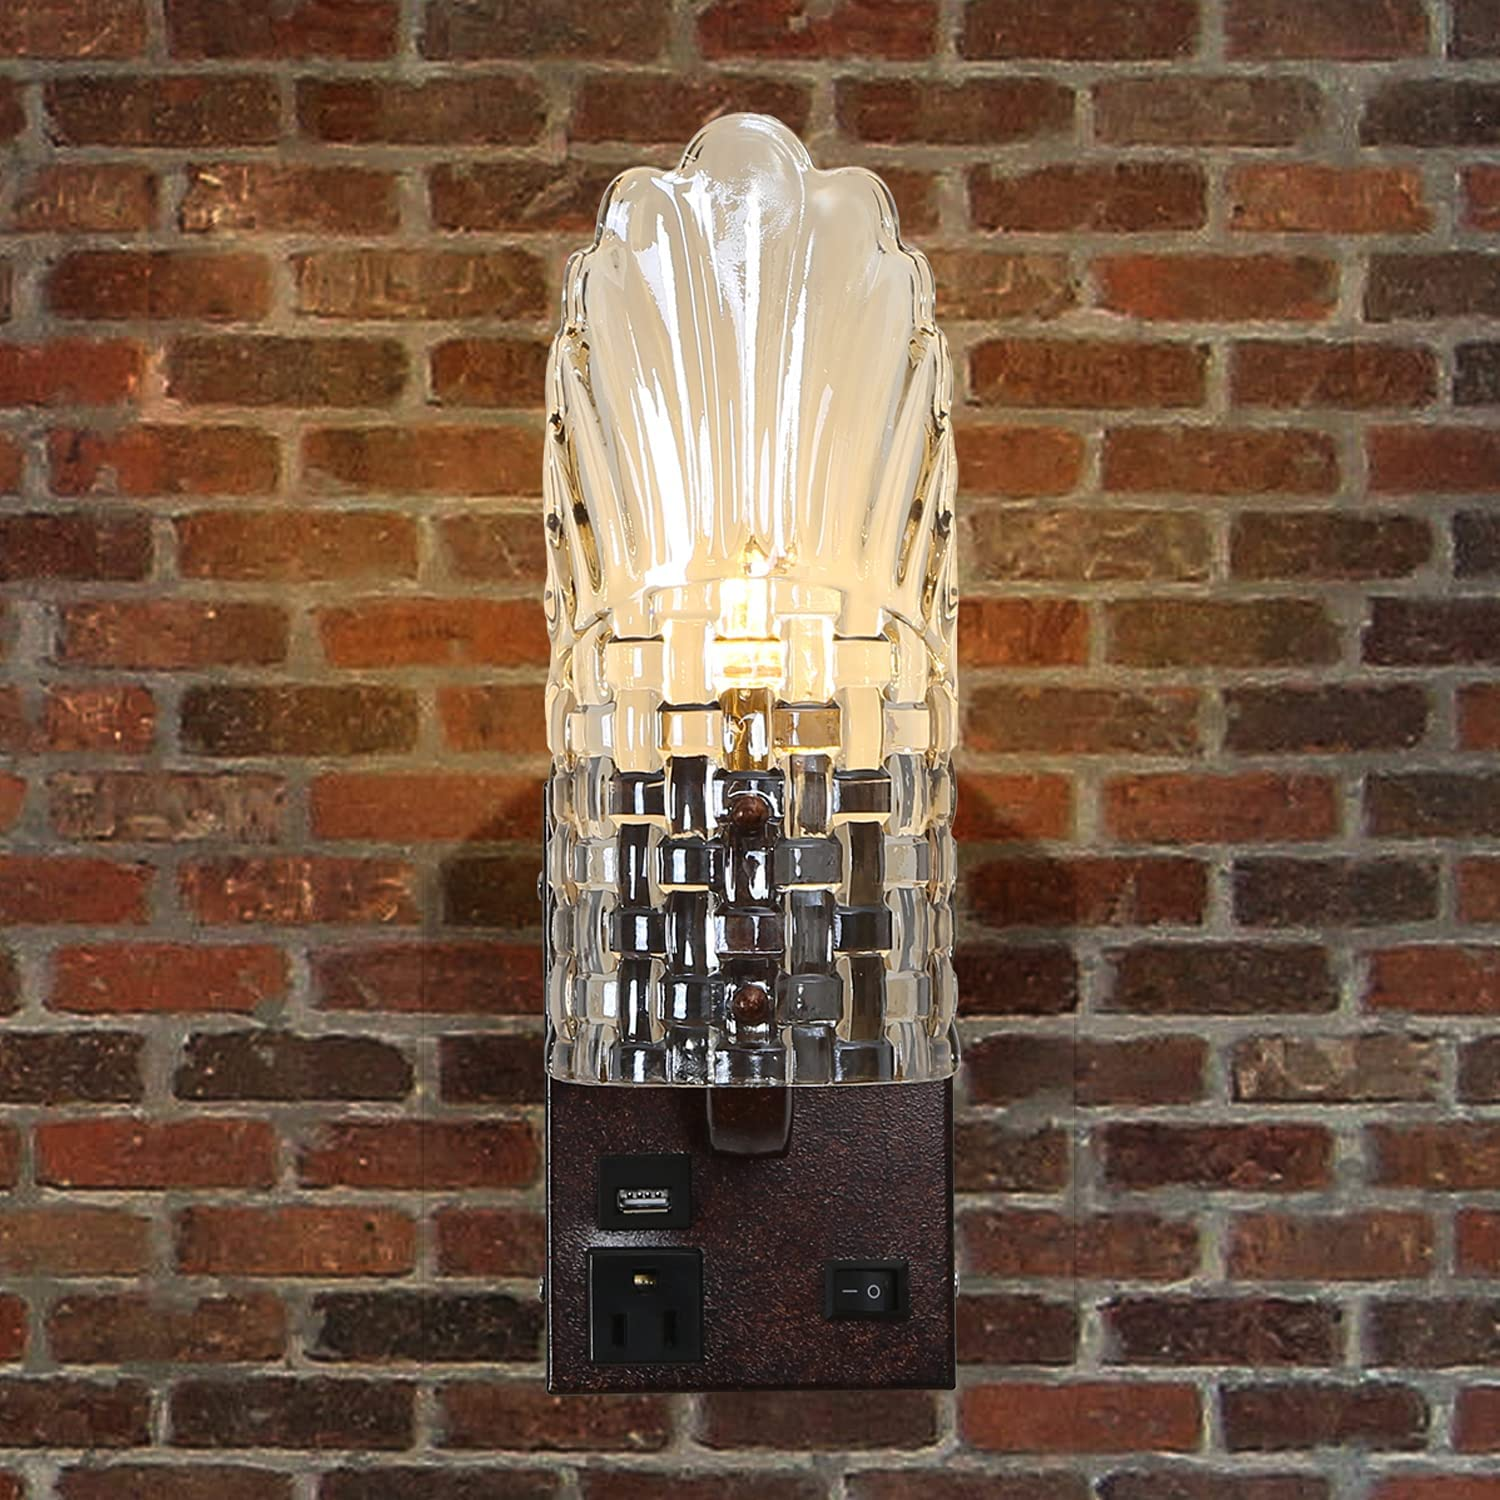 Vintage Wall Cheap mail Large special price !! order sales Lamp Glass and Sconces Metal Fixtu Retro Light